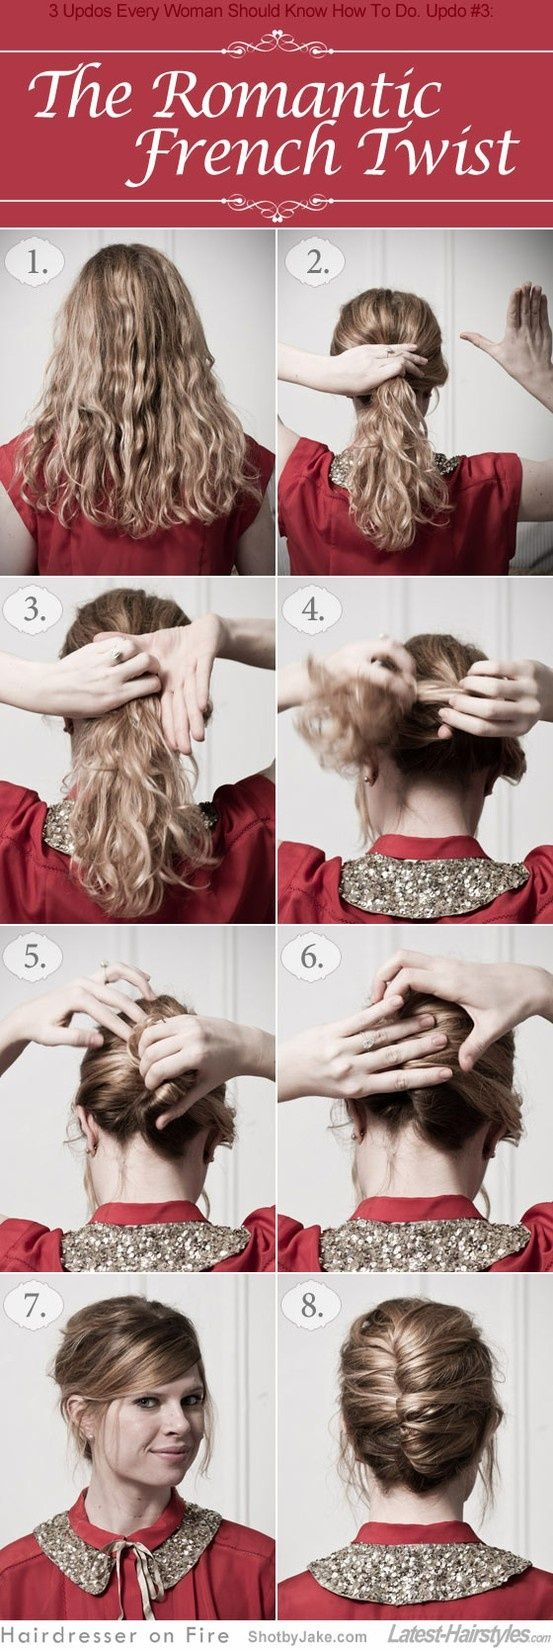 The Romantic French Twist